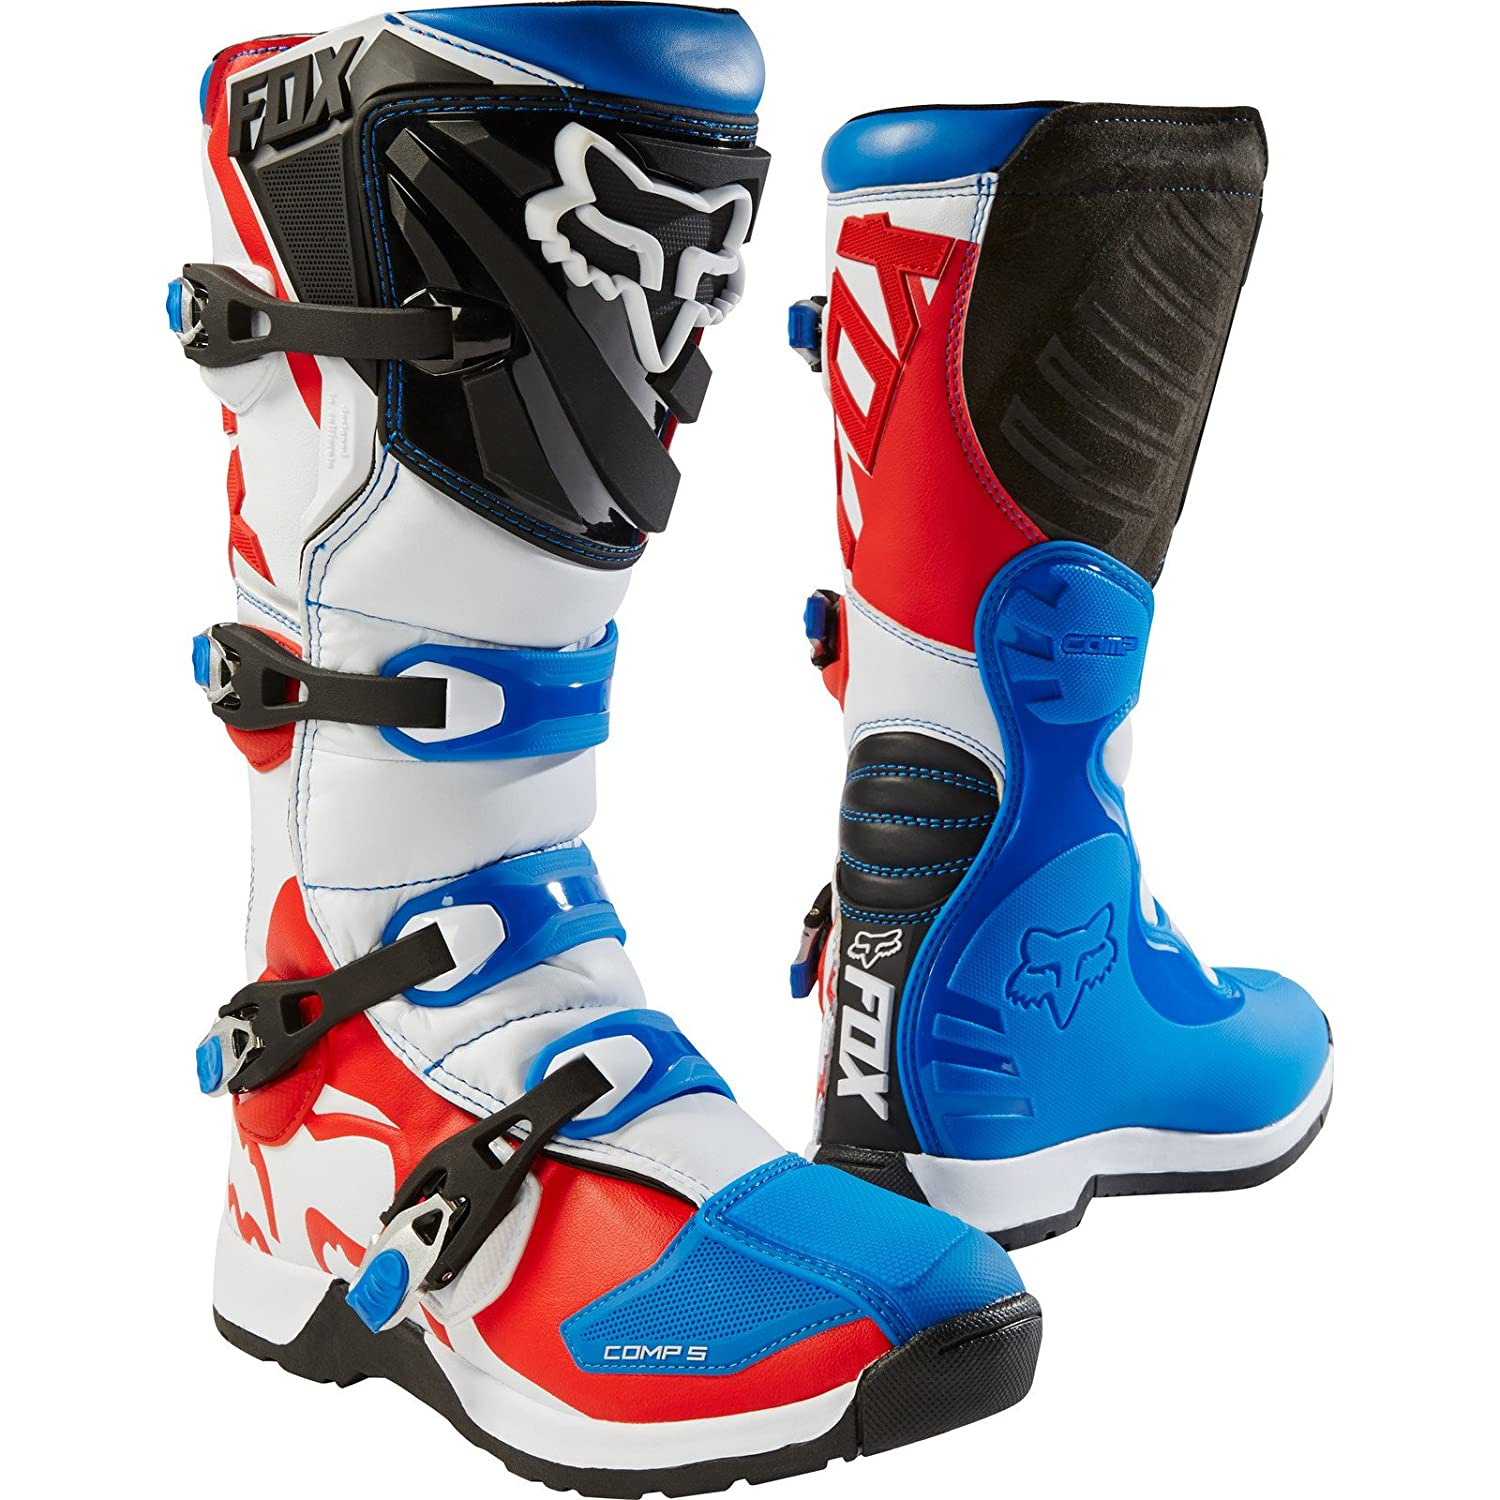 Fox Boots Comp 5, Blue/Red, tamañ o 12 tamaño 12 FOX HEAD EUROPE 16448-149-12